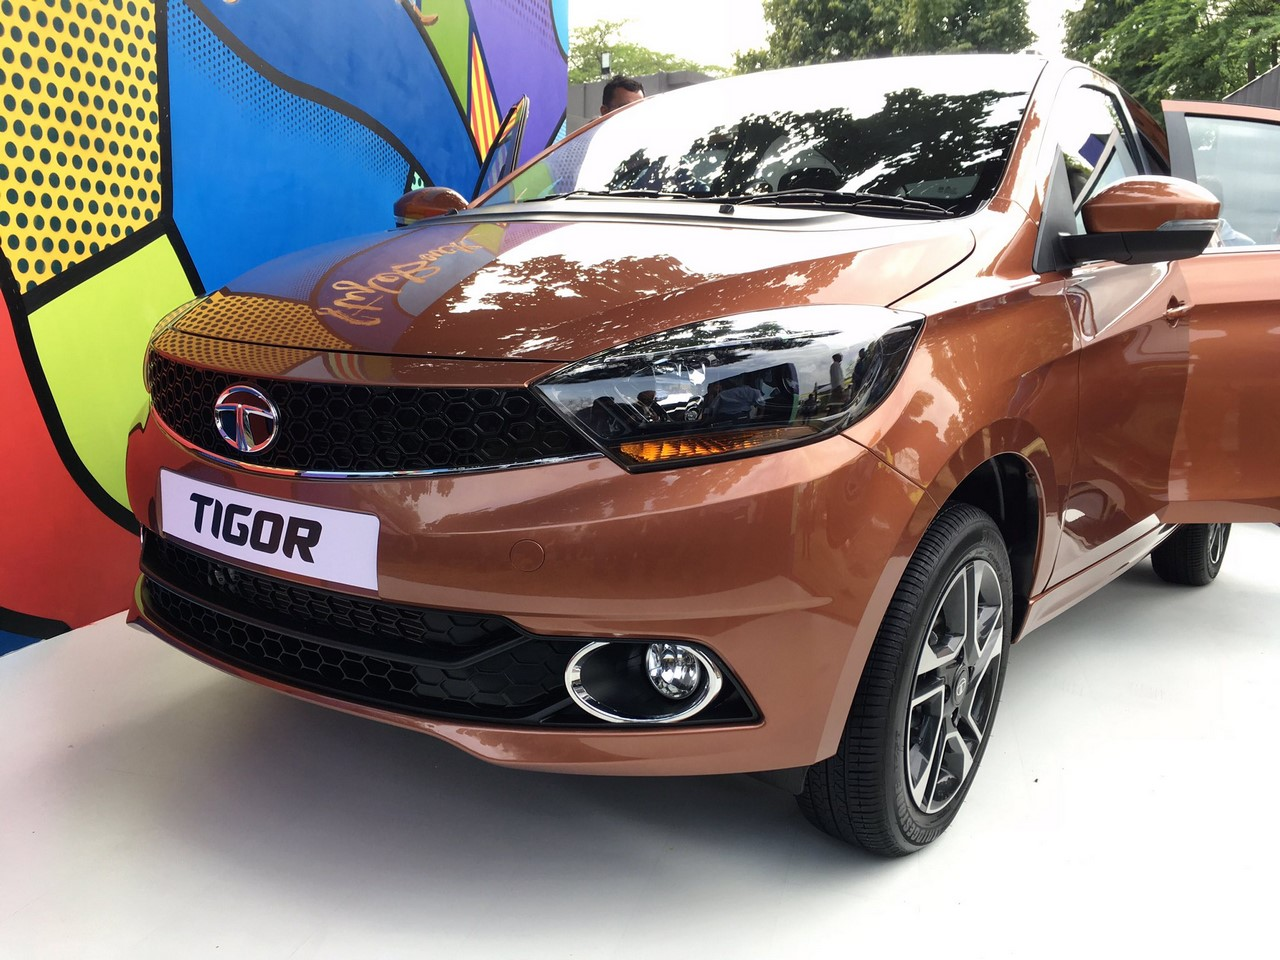 Tata Tigor at media presentation